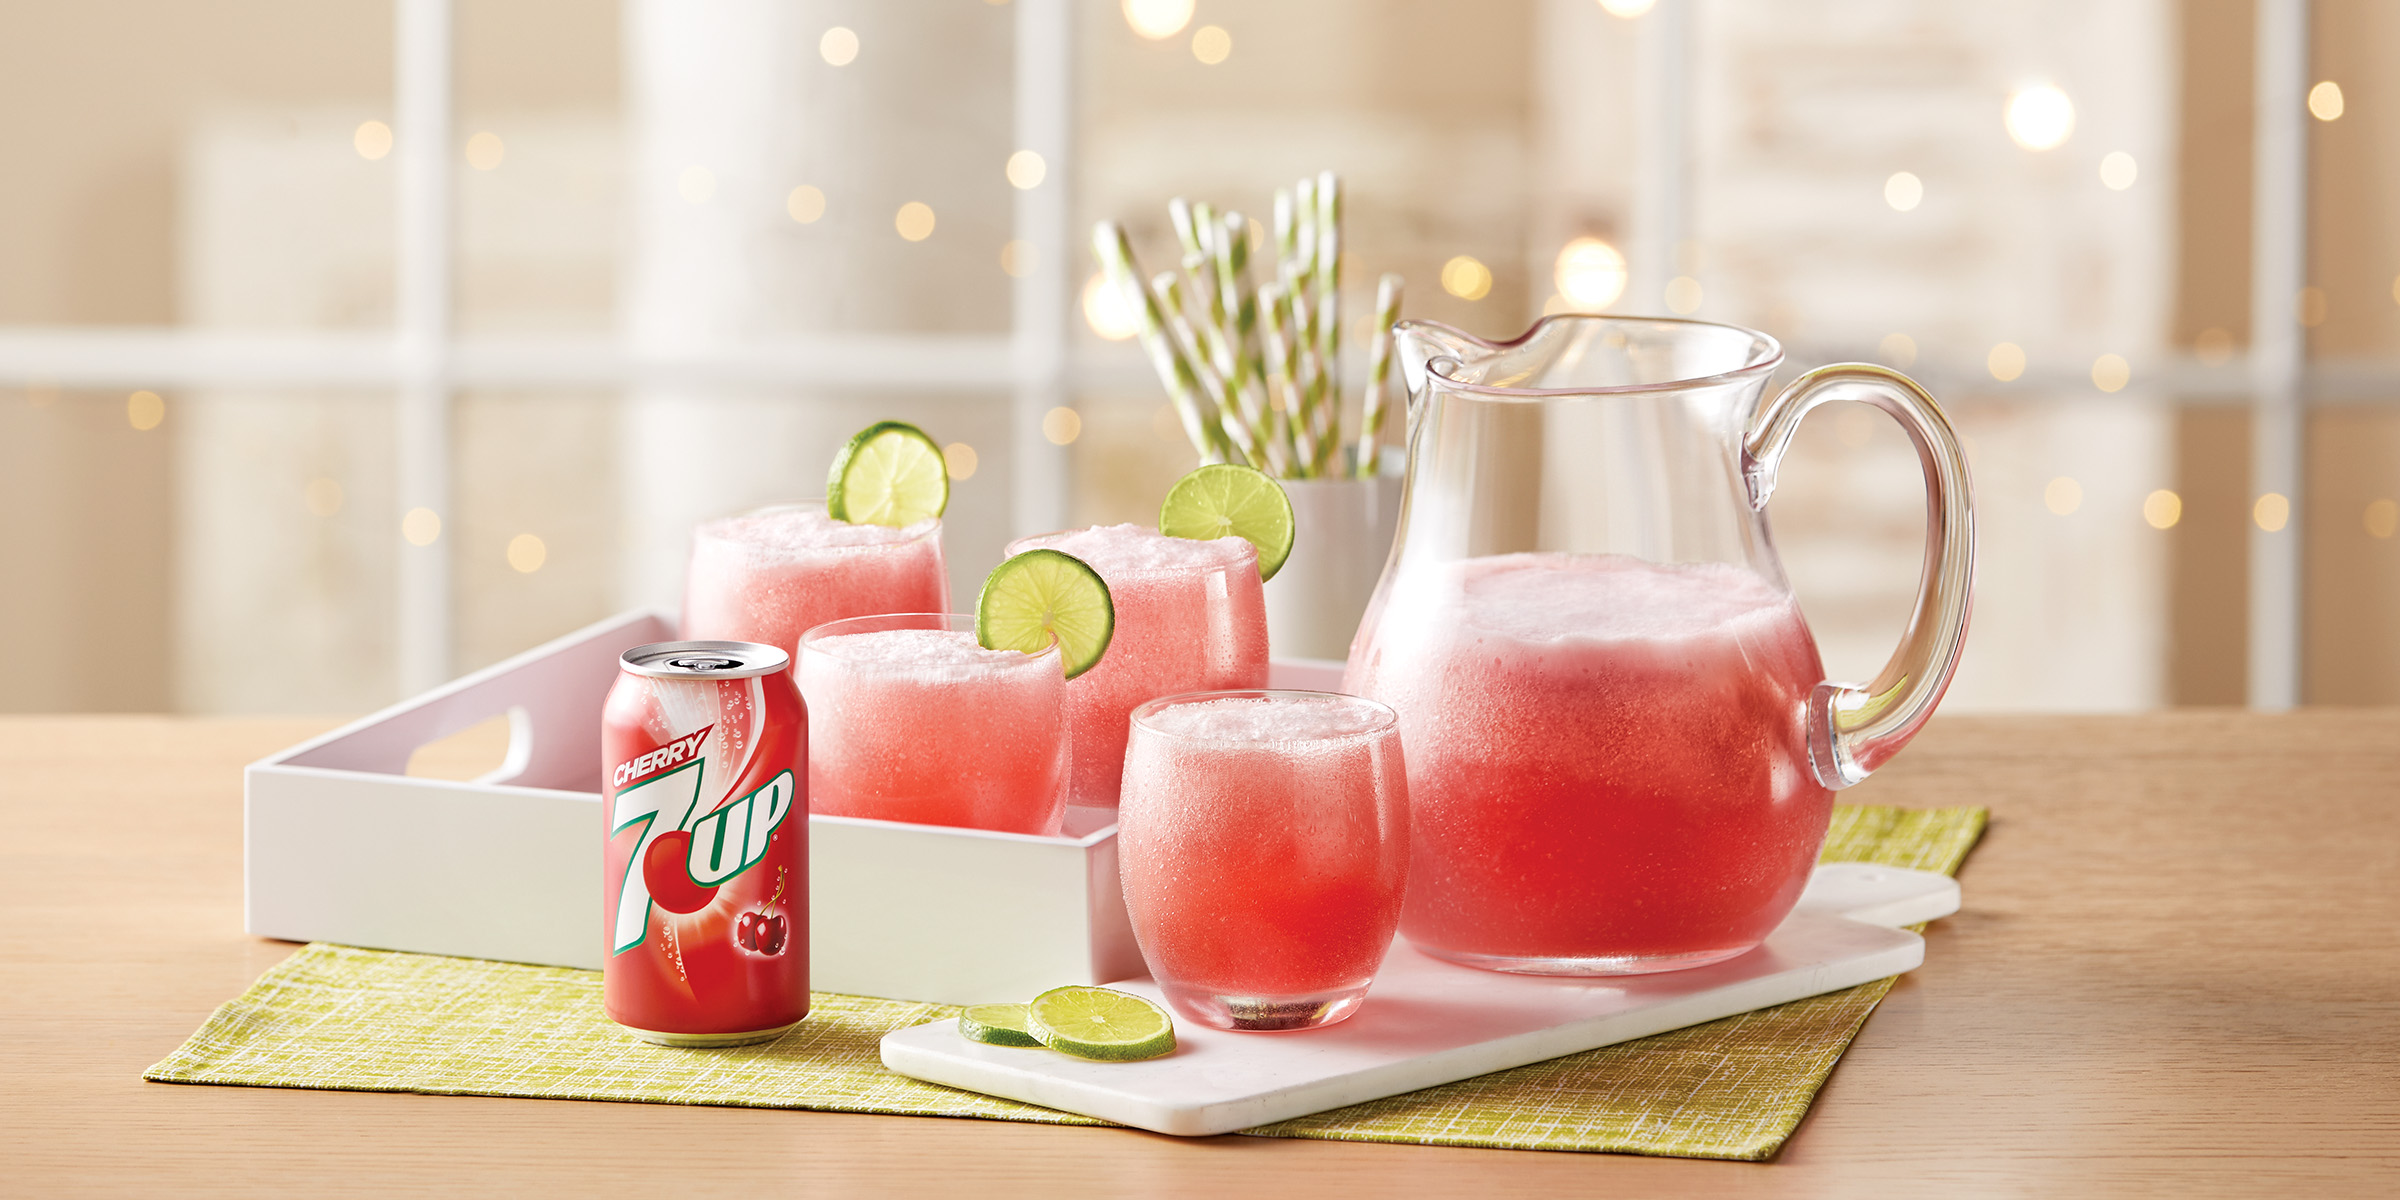 7up berry cherry punch recipe 7up forumfinder Images